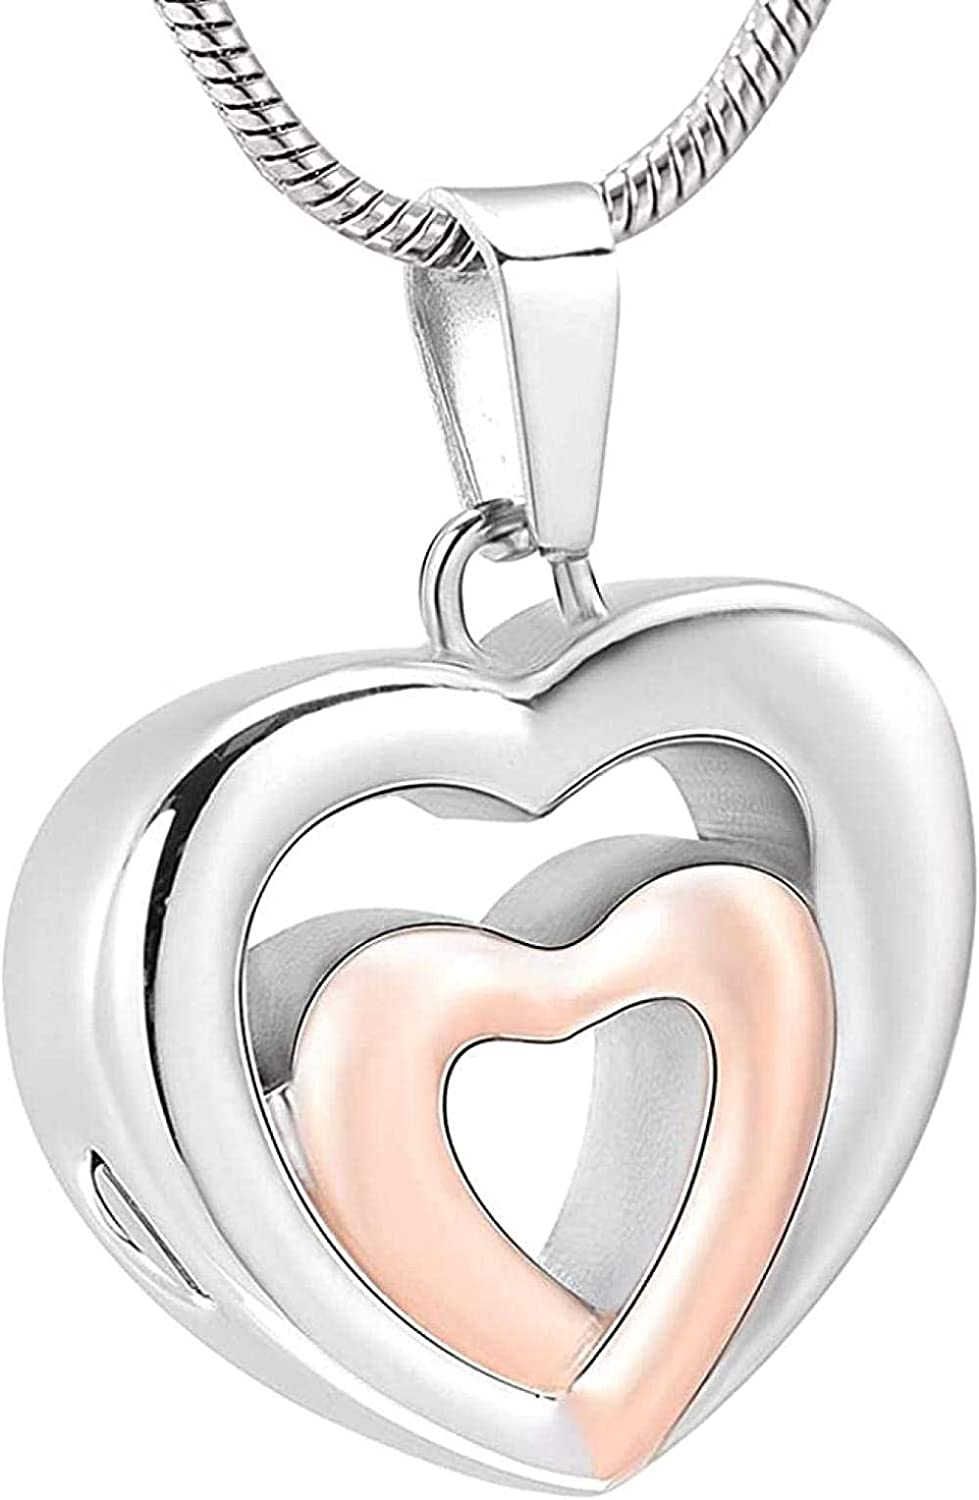 AEGW Cremation Memorial Memorial Cremation Cremation Necklace Cremation Jewelr Pet Memorial Cylinder Stainless Steel Necklace Support Ash Double Heart Cremation Jewelry-Rose_Golden